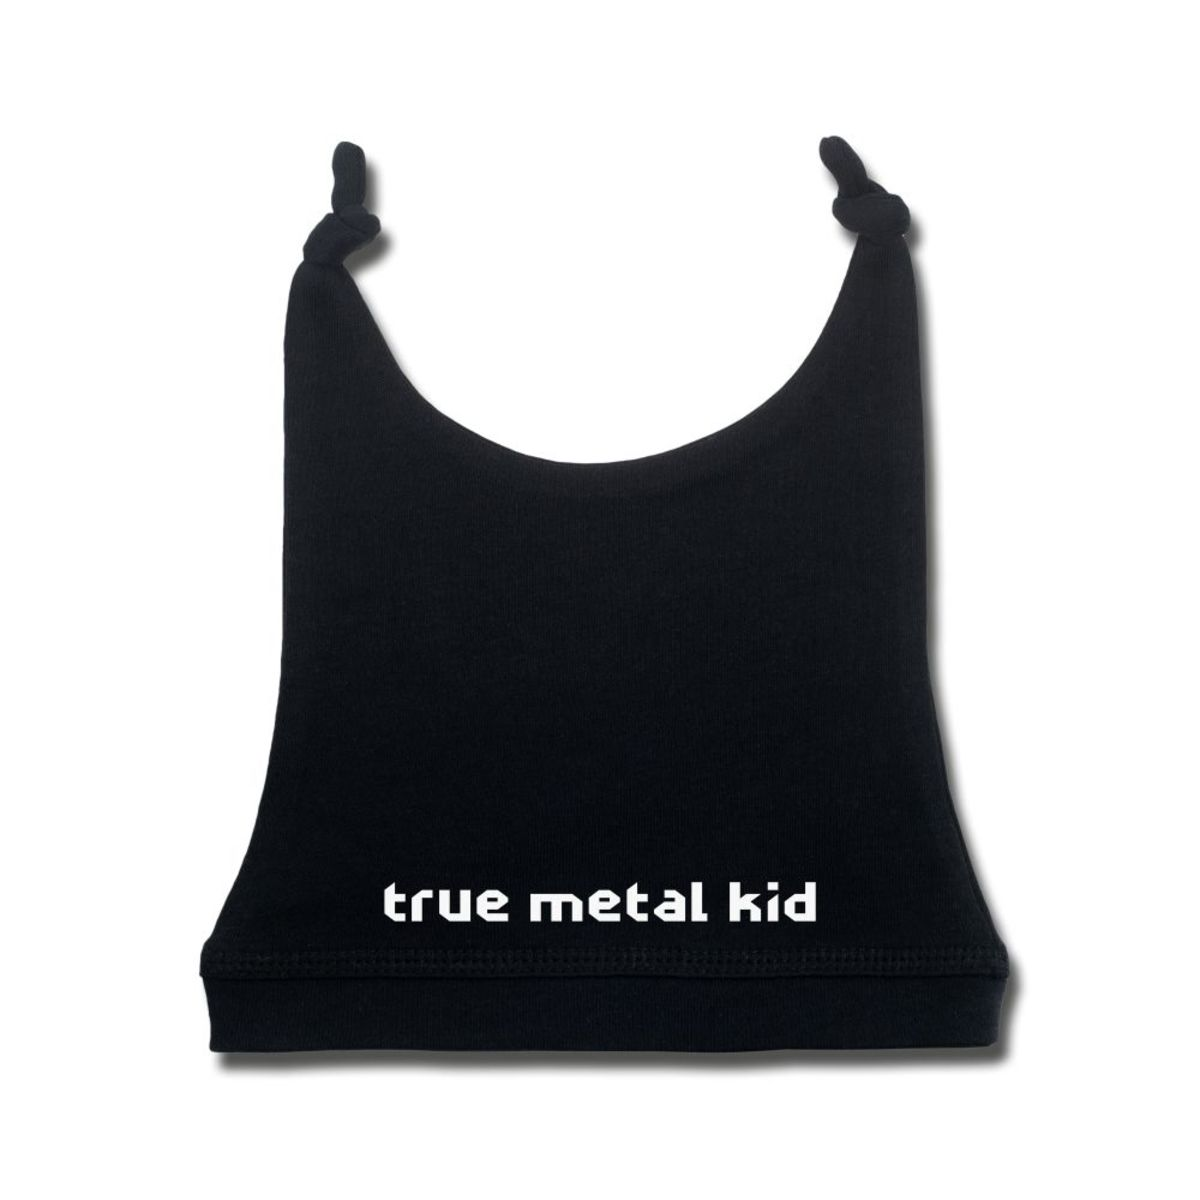 čepice dětská true metal kid in white - black - Metal-Kids - 240-15-8-7